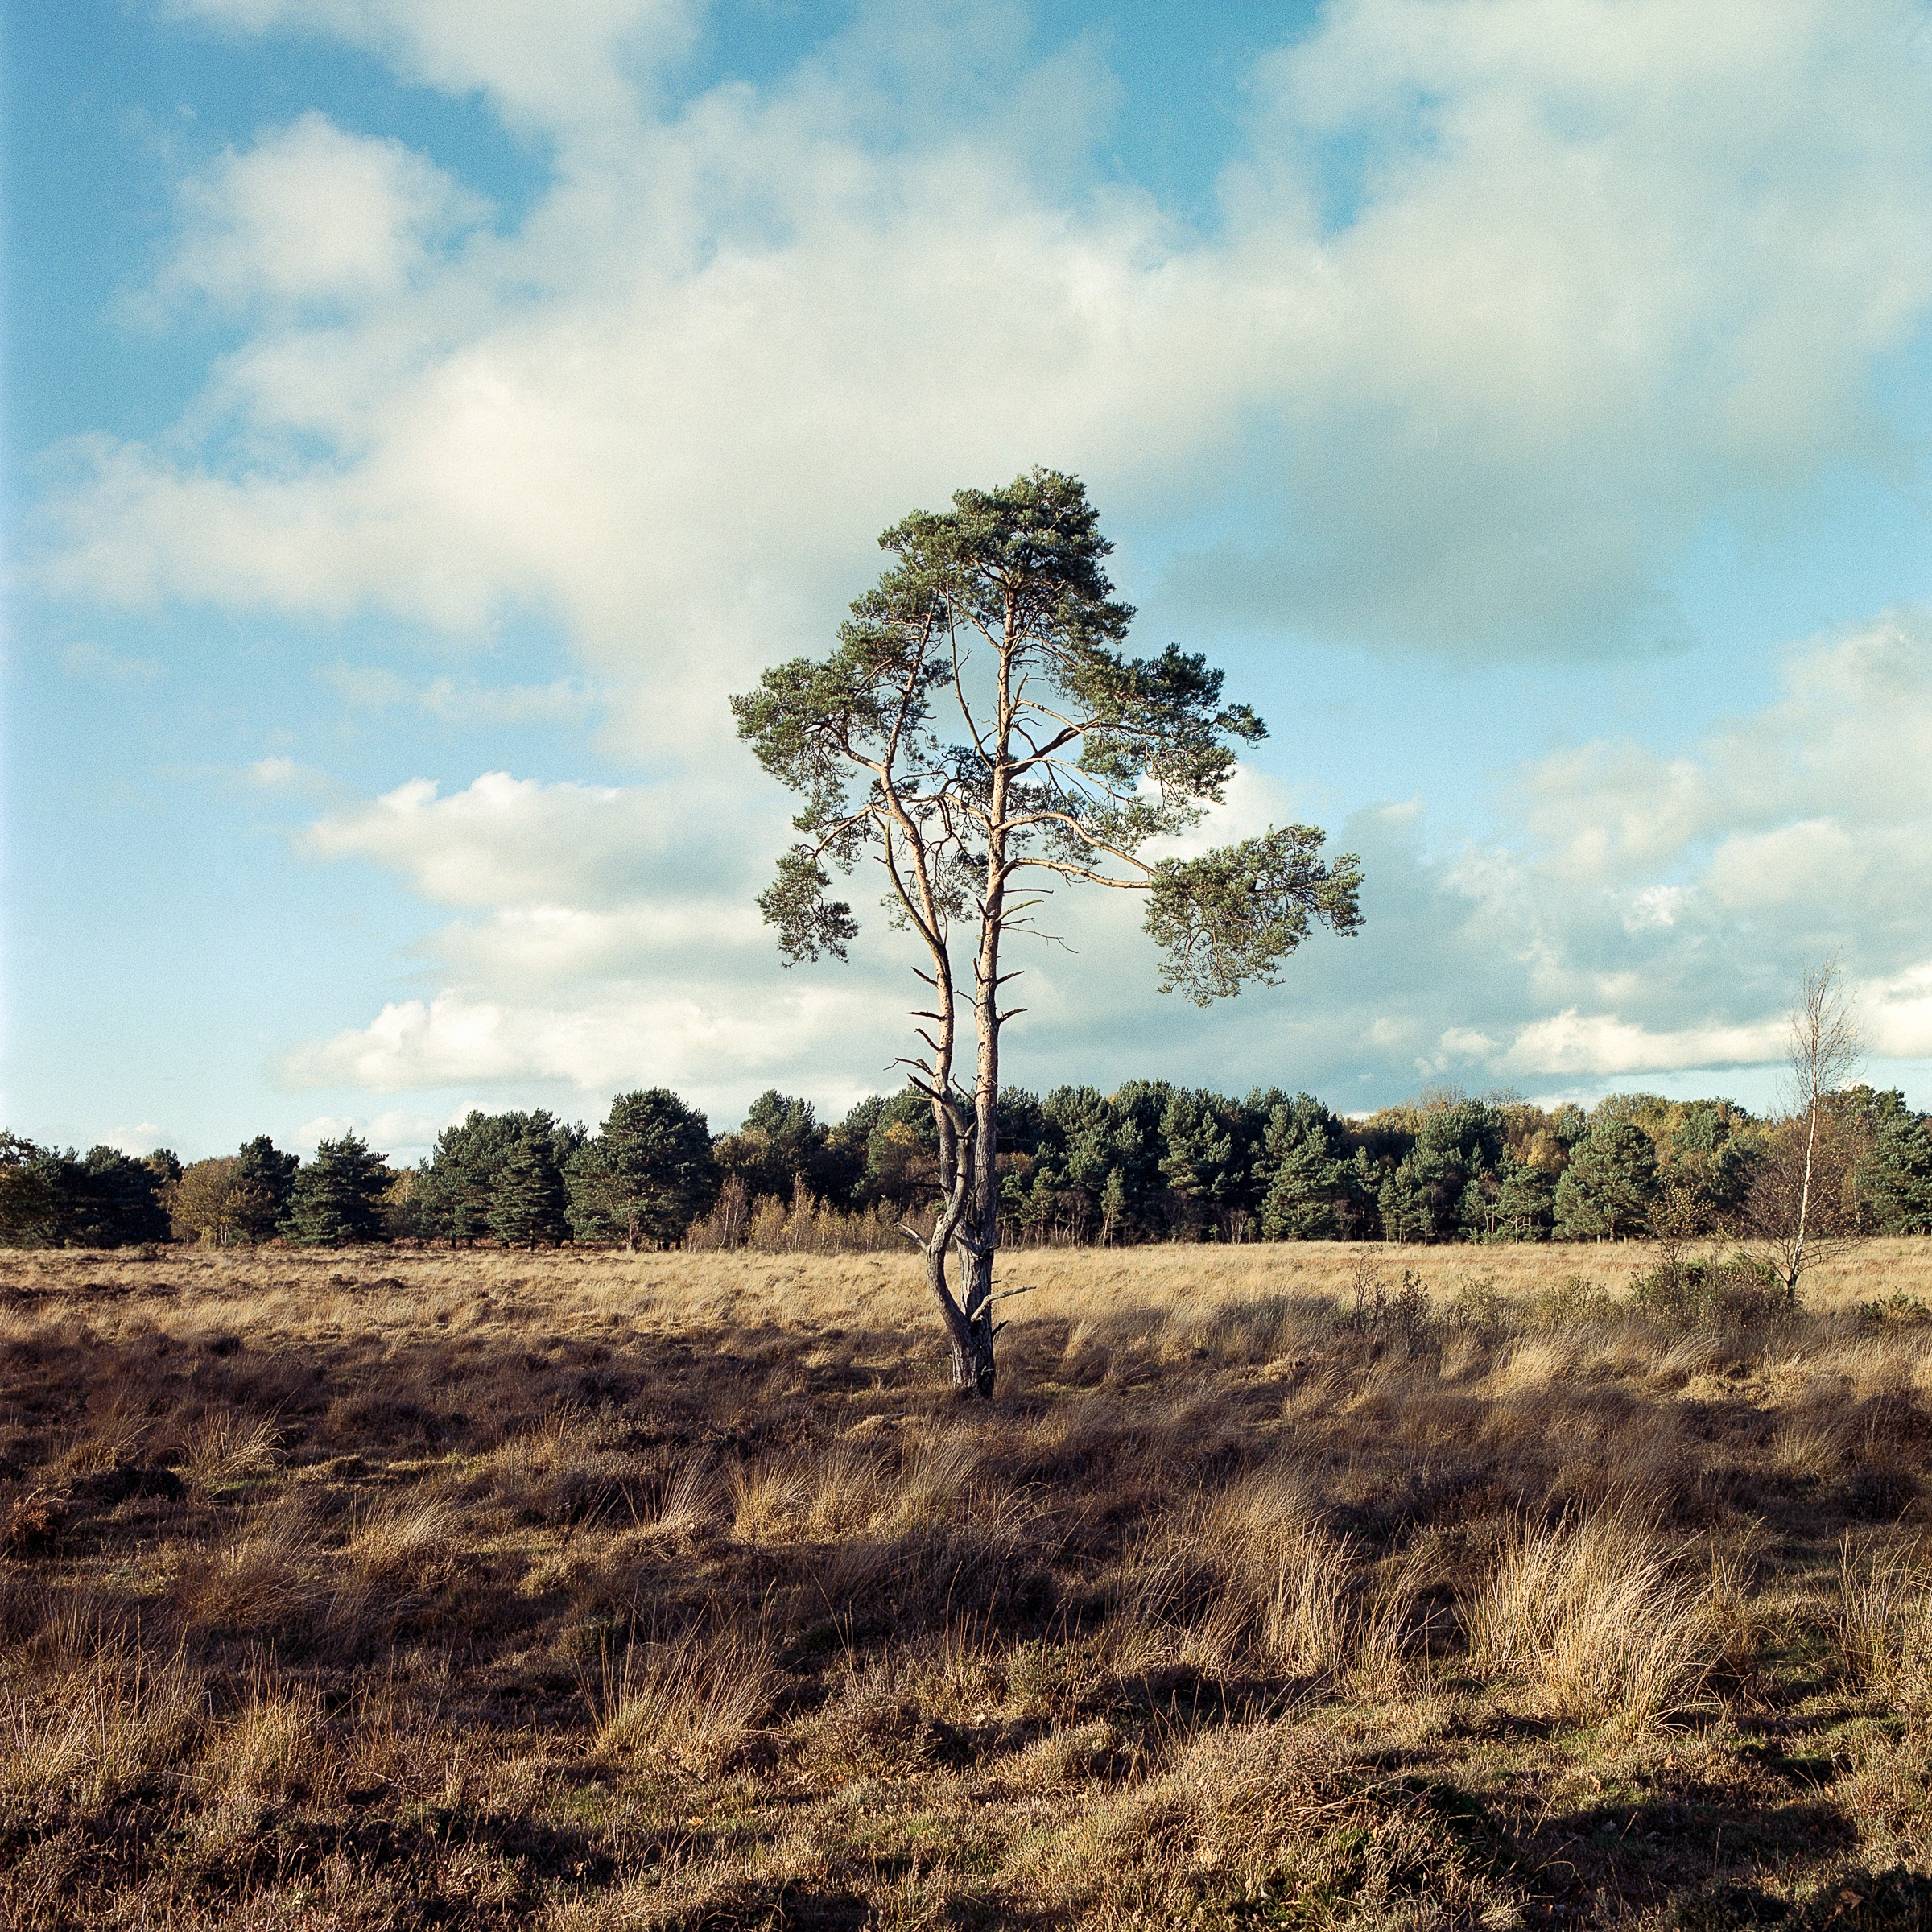 Skipwith Common   Hasselblad   60mm   Portra 400   Mark Hillyer